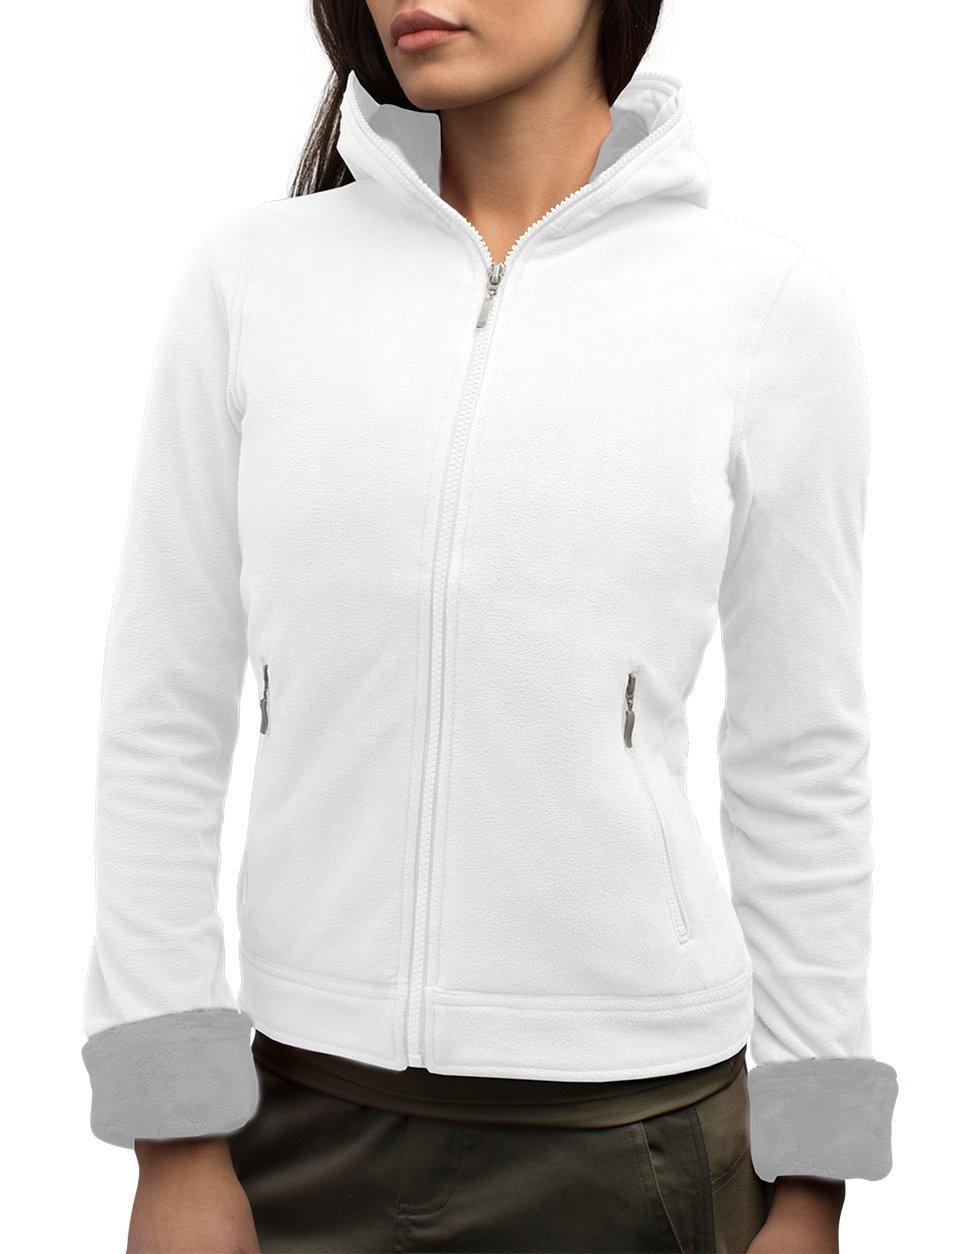 SCOTTeVEST Chloe Hoodie - 14 Pockets - Travel Clothing, Pickpocket Proof (M2, Ice)